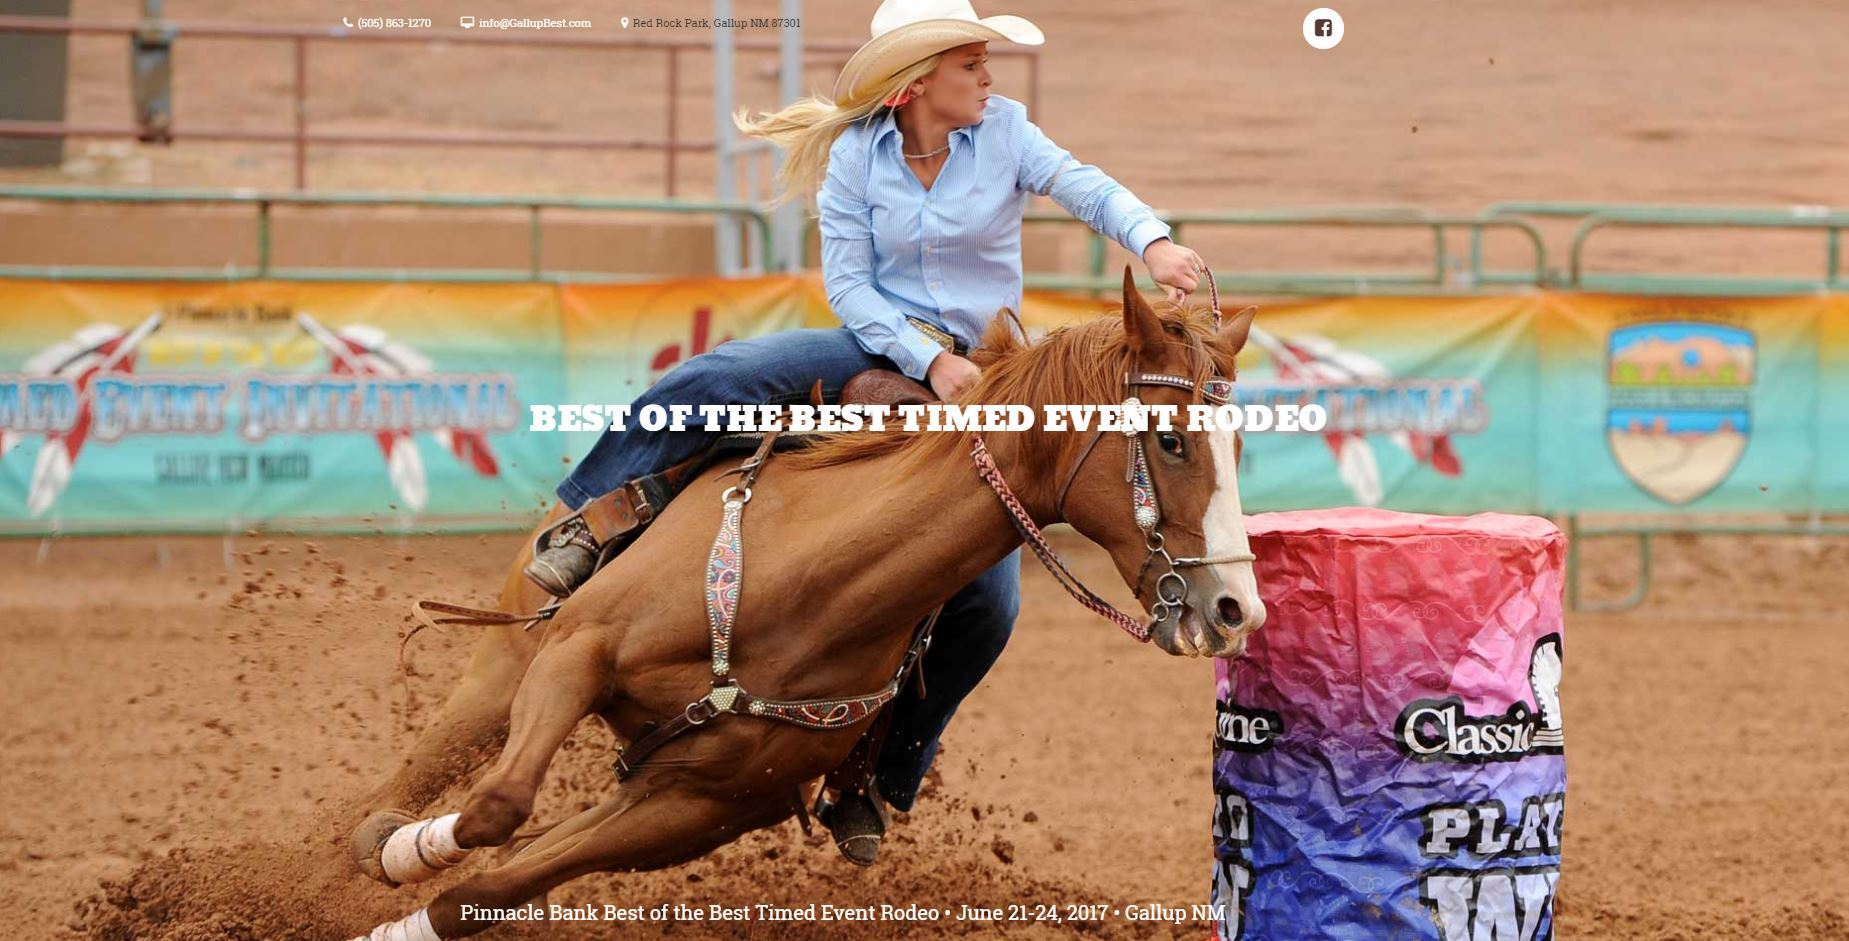 Best of the Best Cowgirl